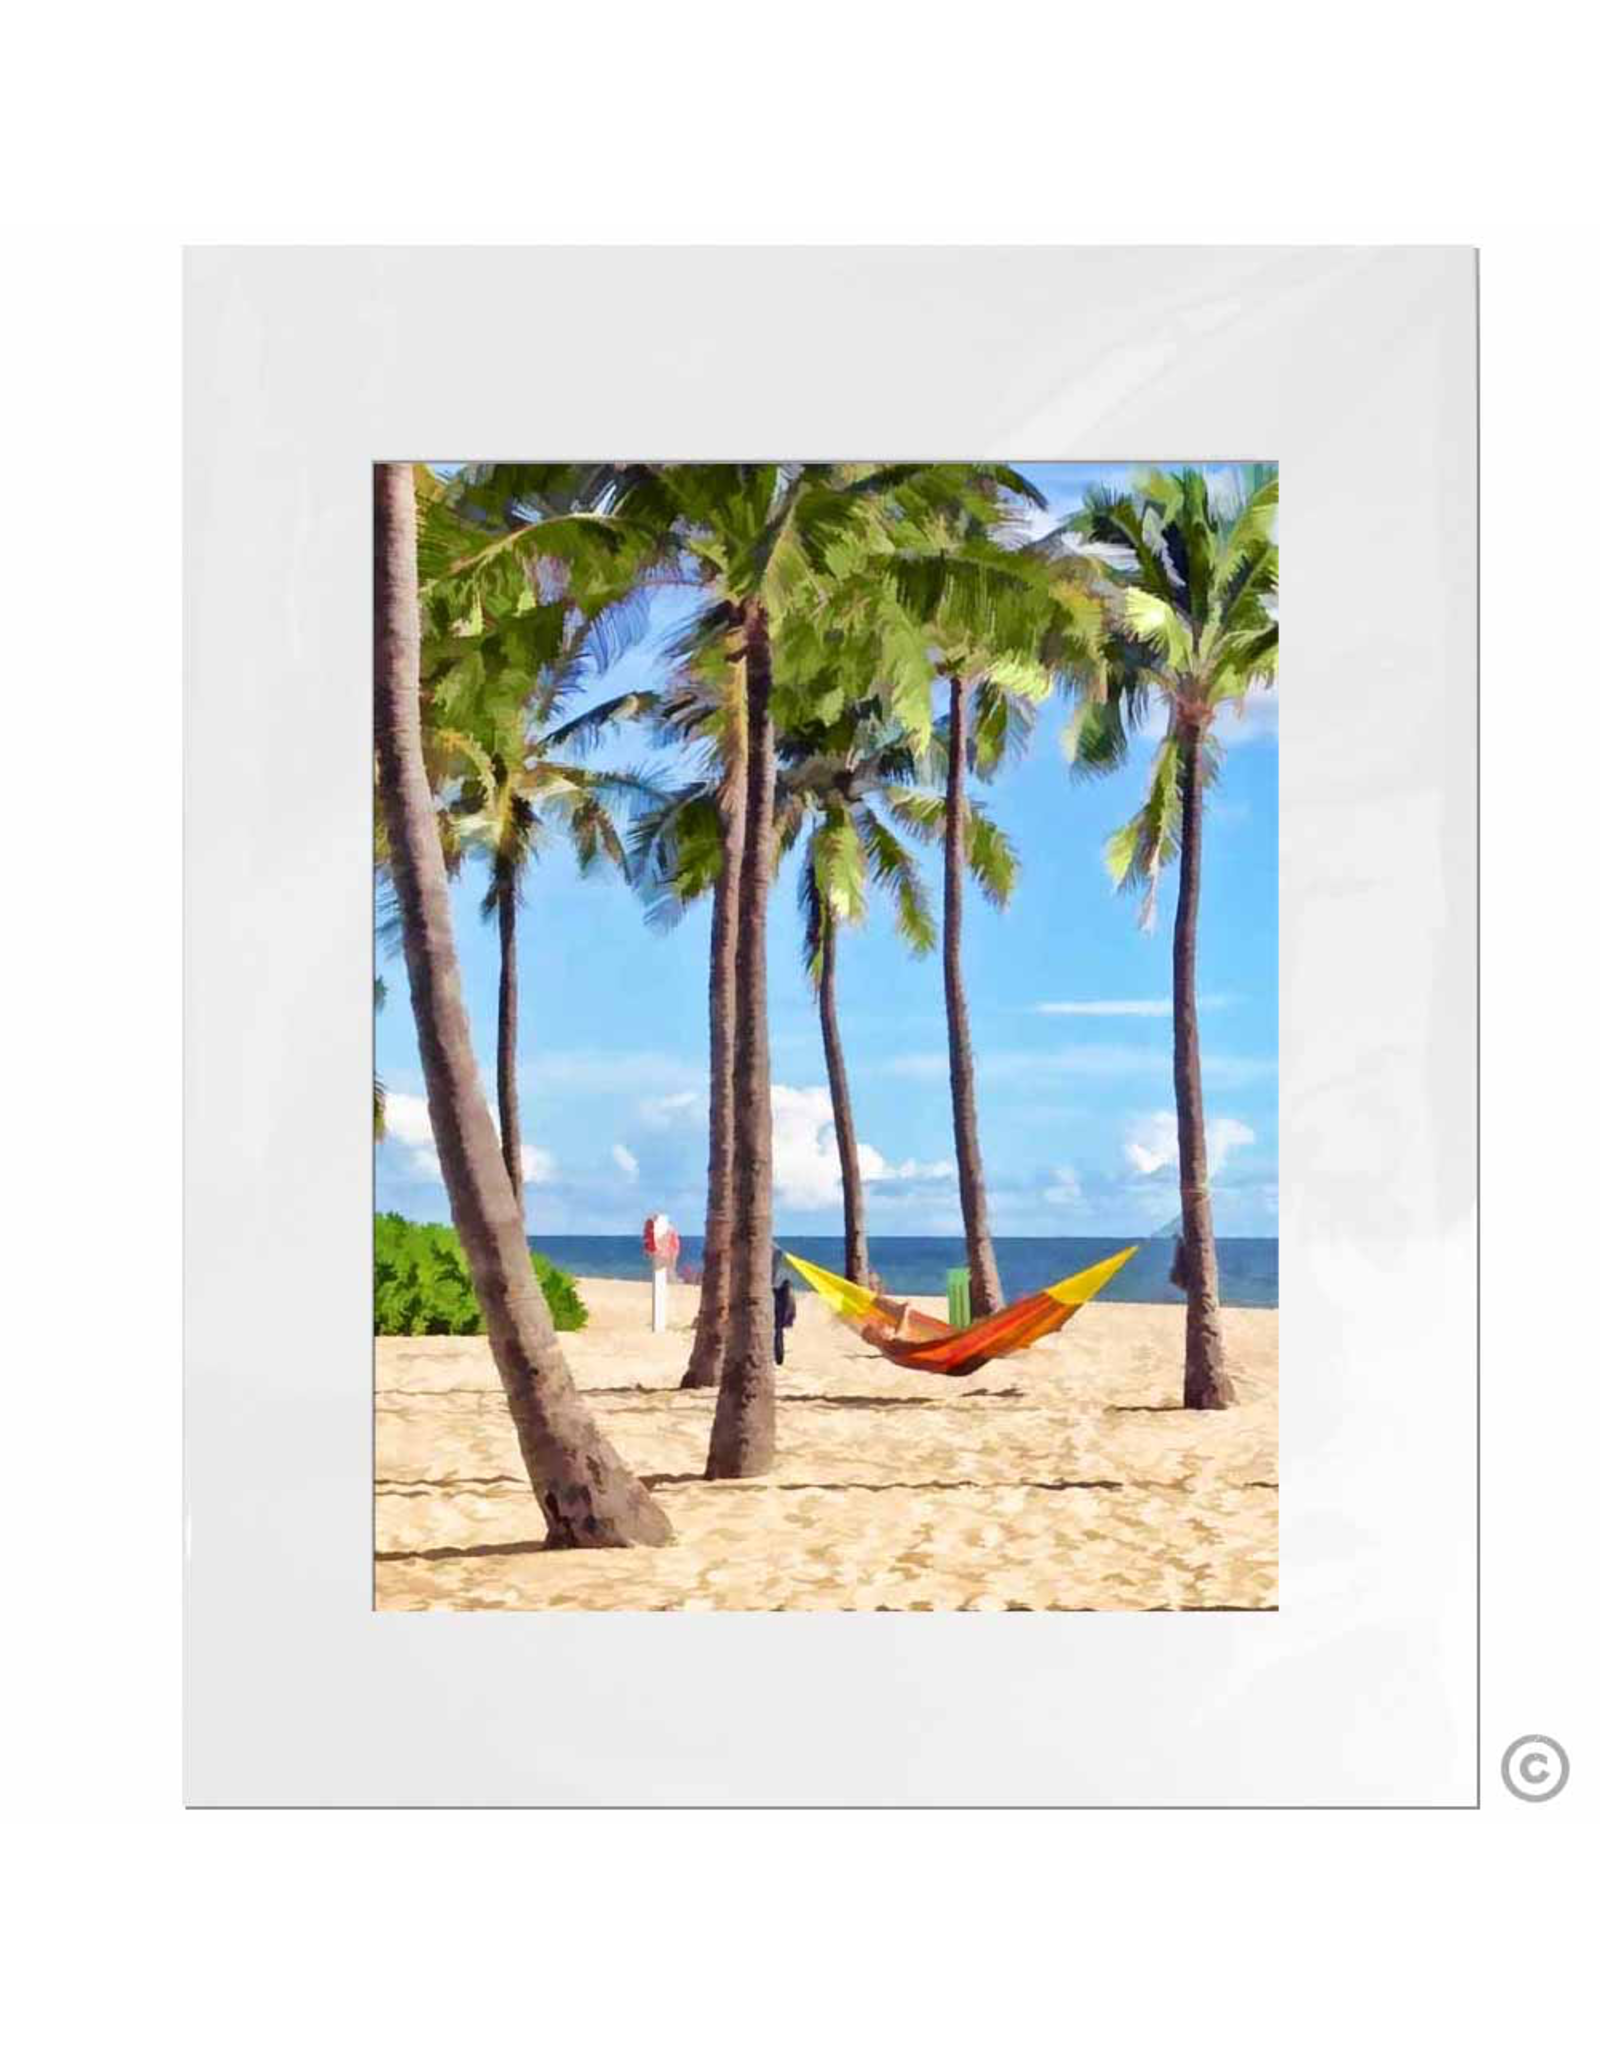 Maureen Terrien Photography Art Print Hammock 11x14 - 8x10 Matted